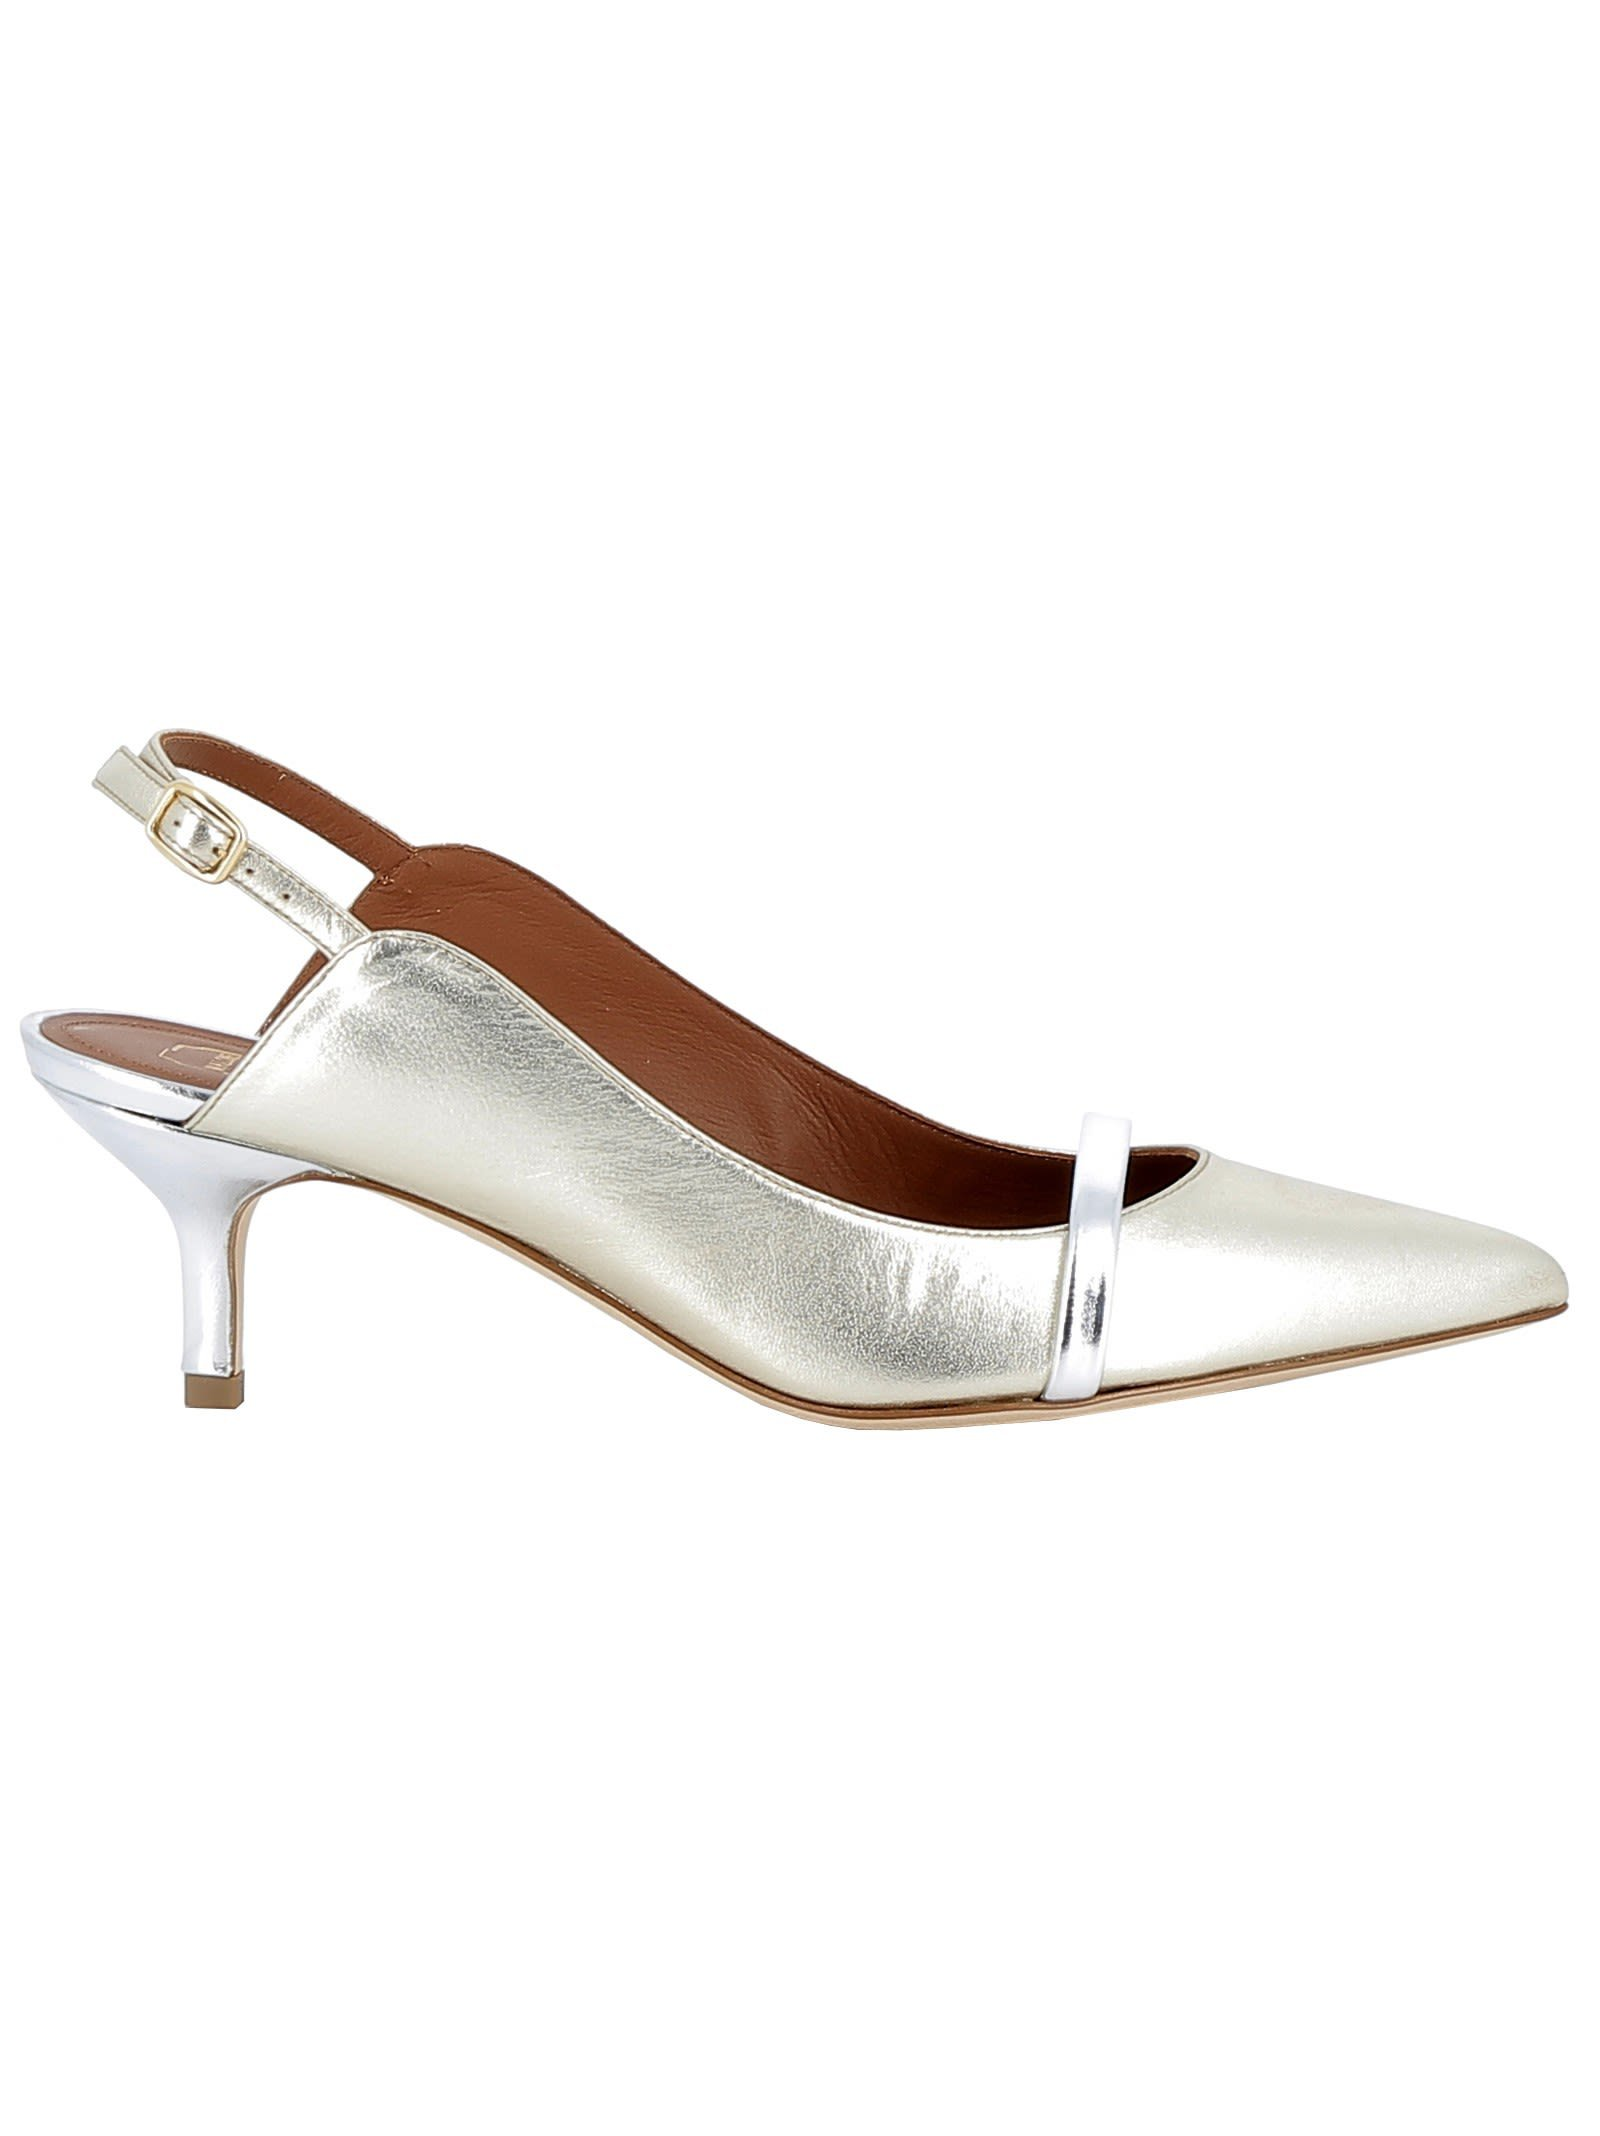 Malone Souliers Gold Pumps